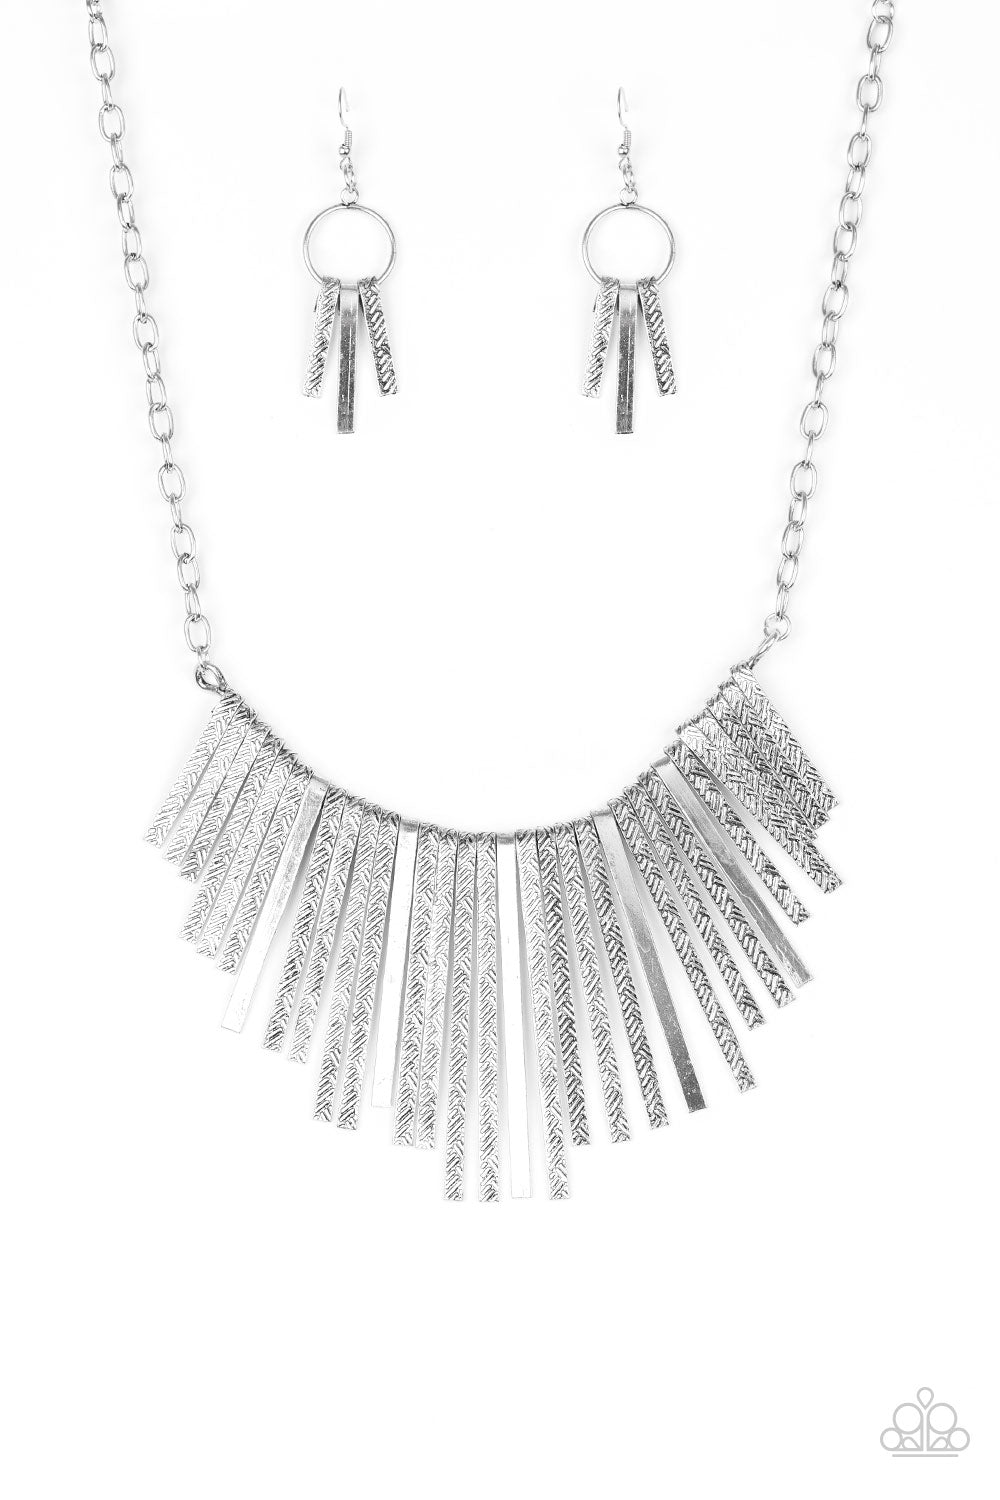 Paparazzi / Welcome To The Pack - Silver Necklace